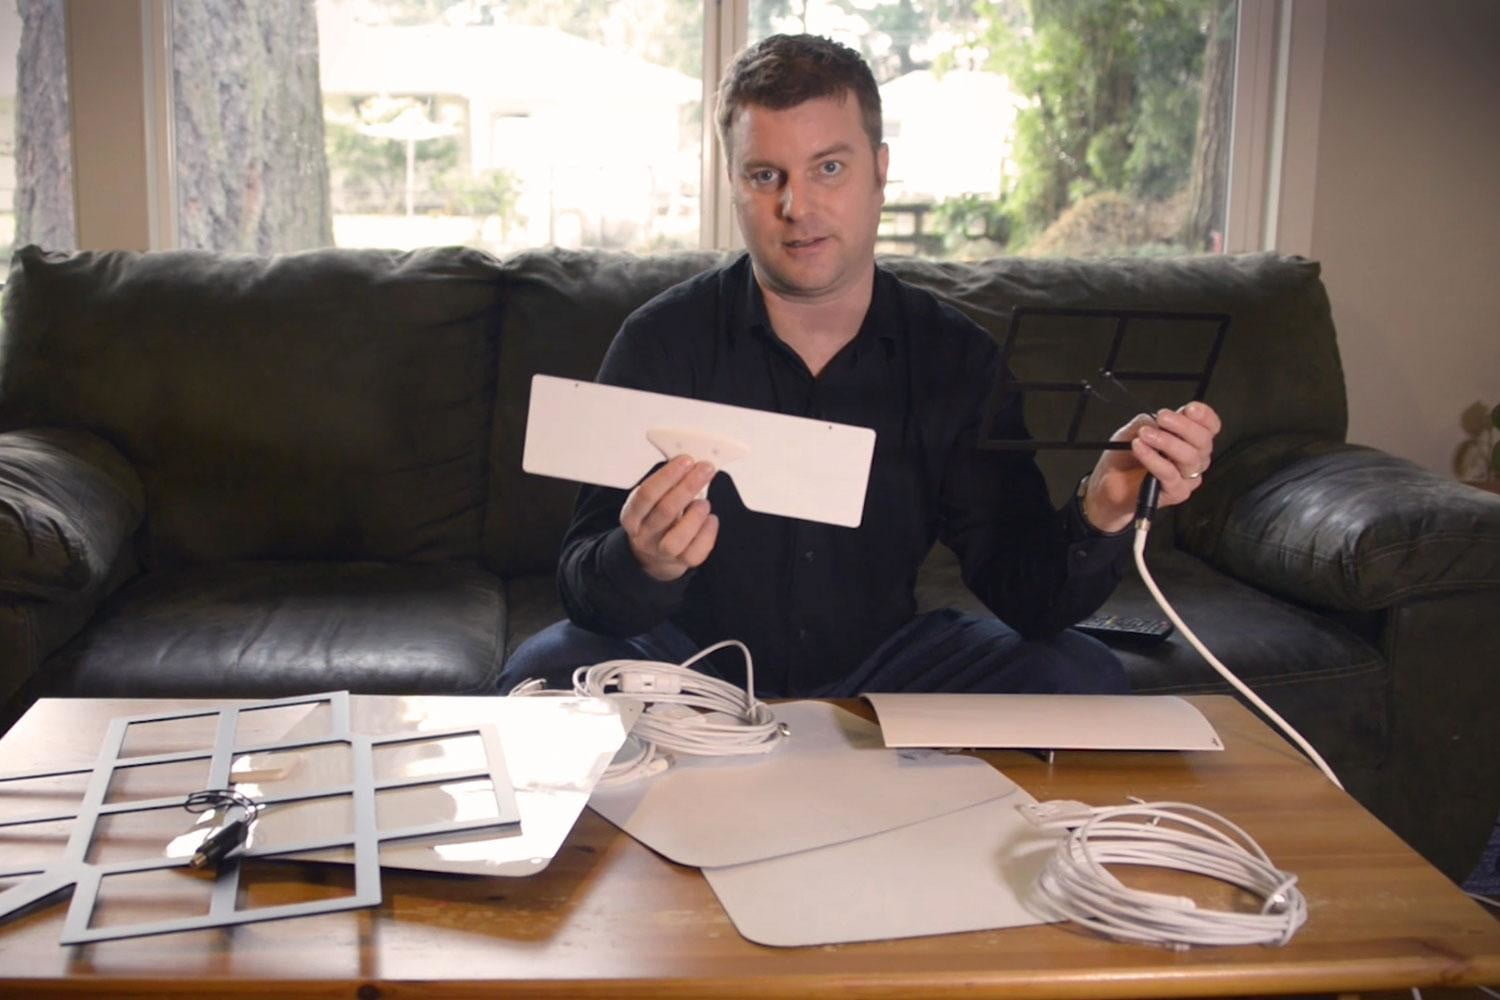 How To Install An HD Antenna To Get Free Television